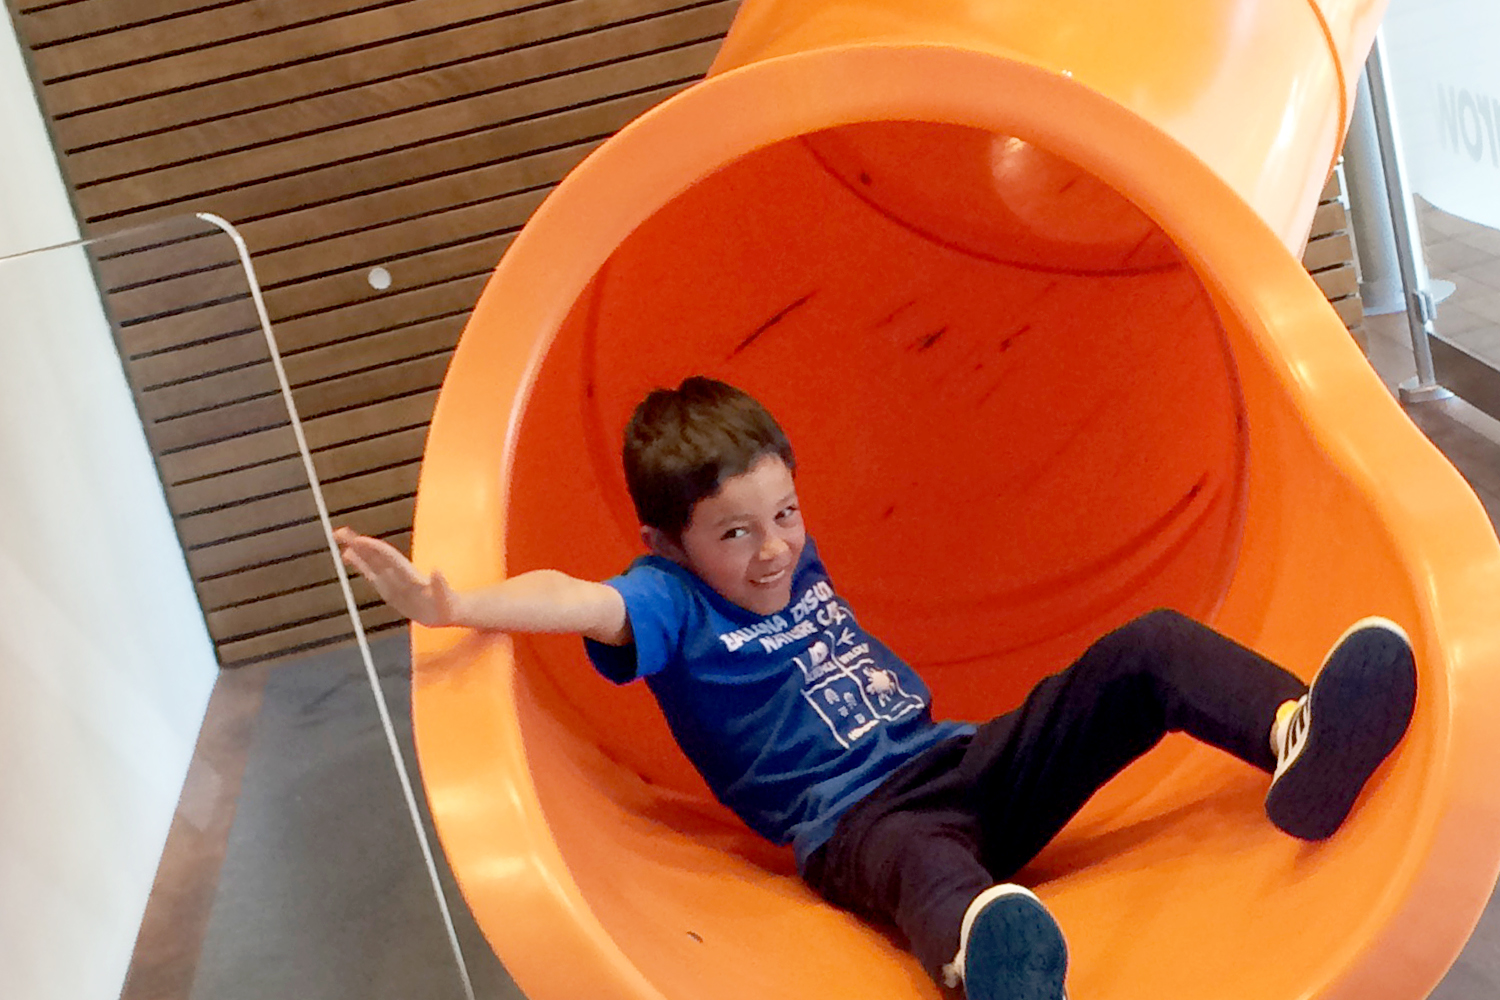 Camper going down slide at offsite location